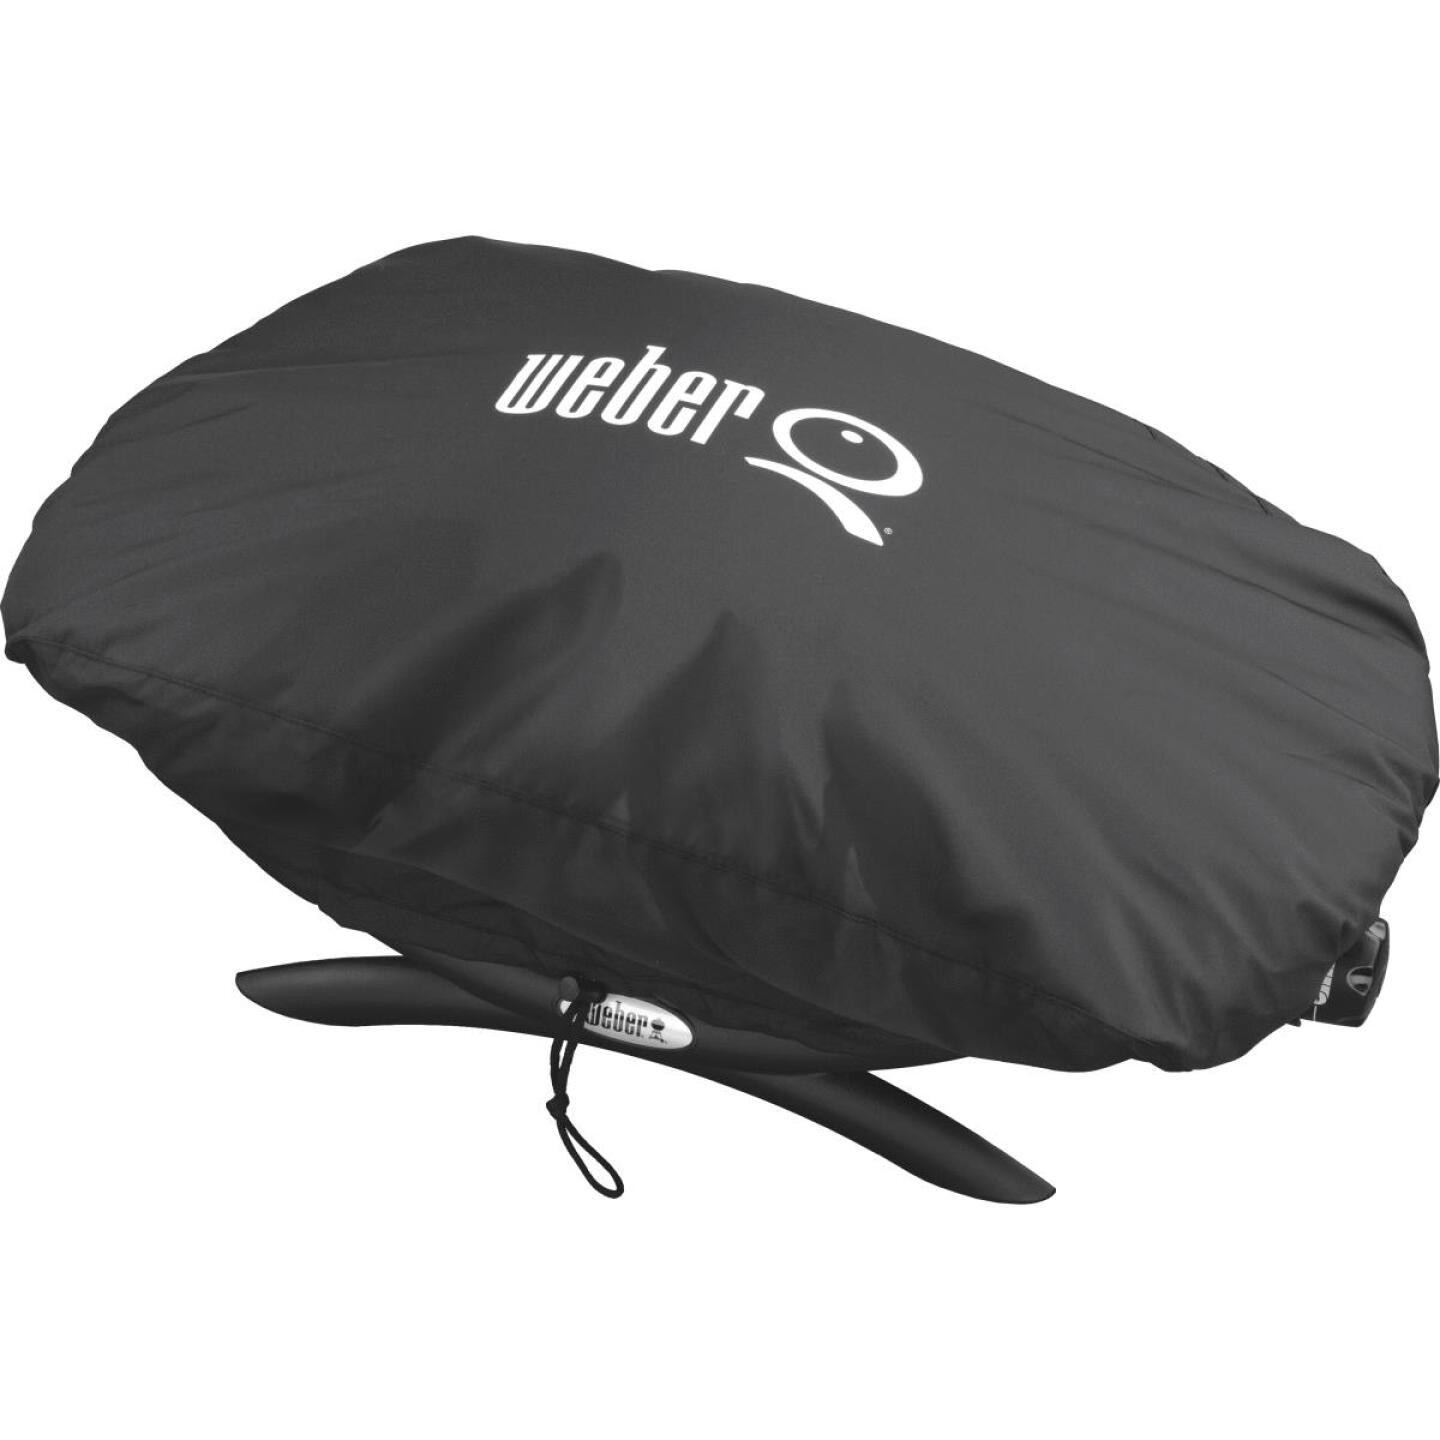 Weber Q 100/1000 27 In. Black Vinyl Grill Cover Image 5